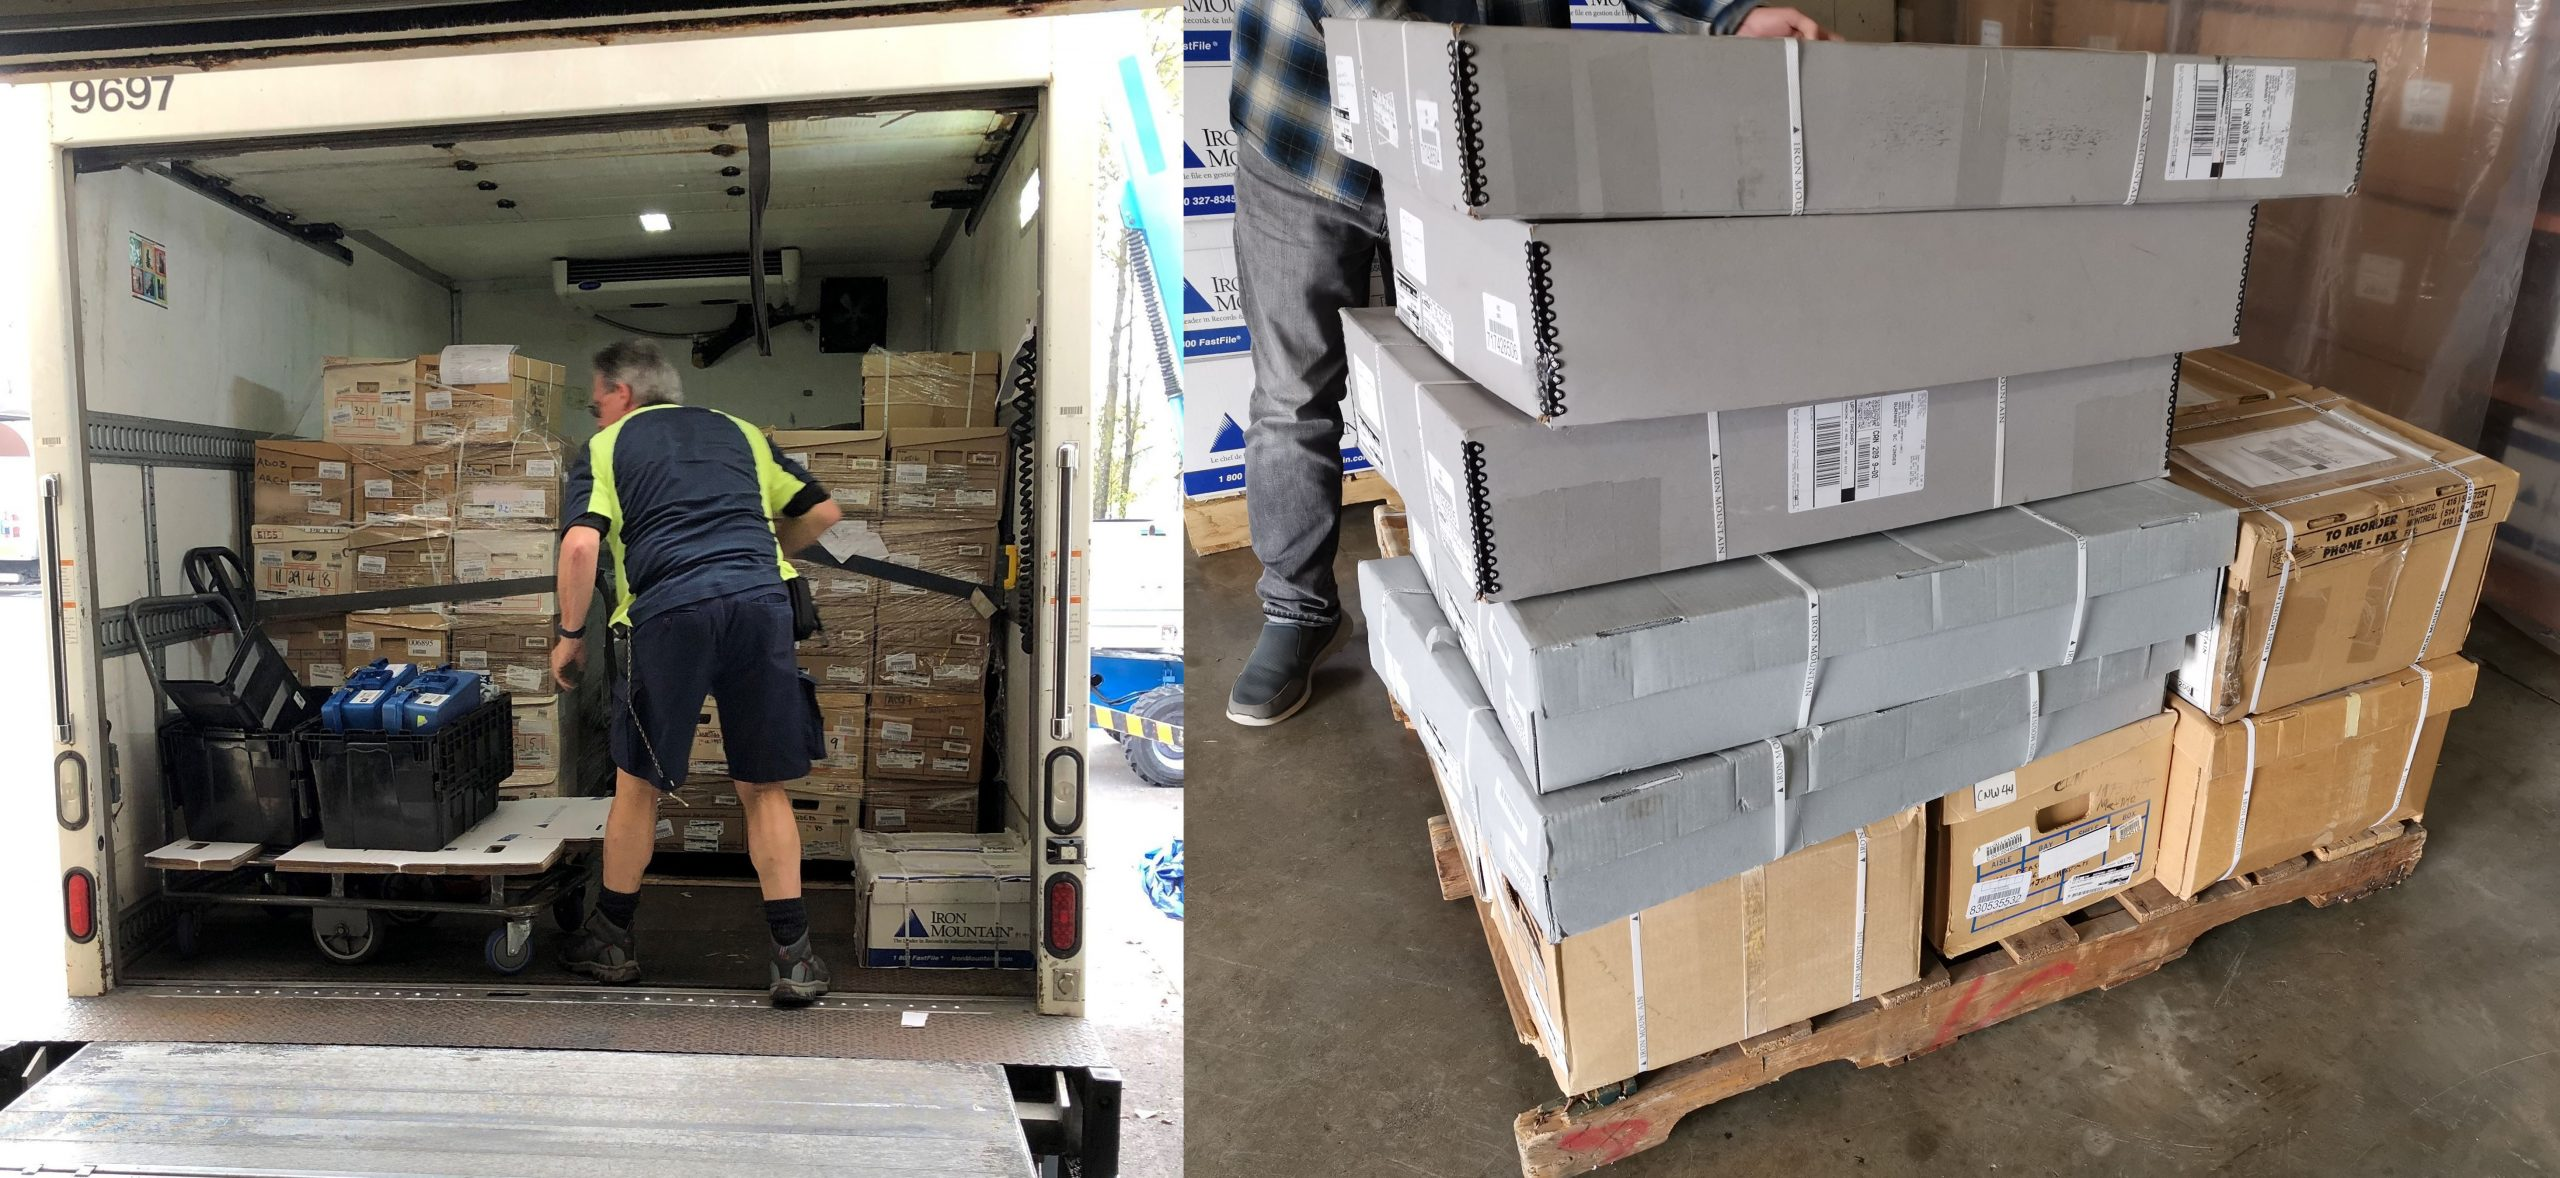 A large donation of private-sector records arriving at the Archives. Photo by Paola Merkins